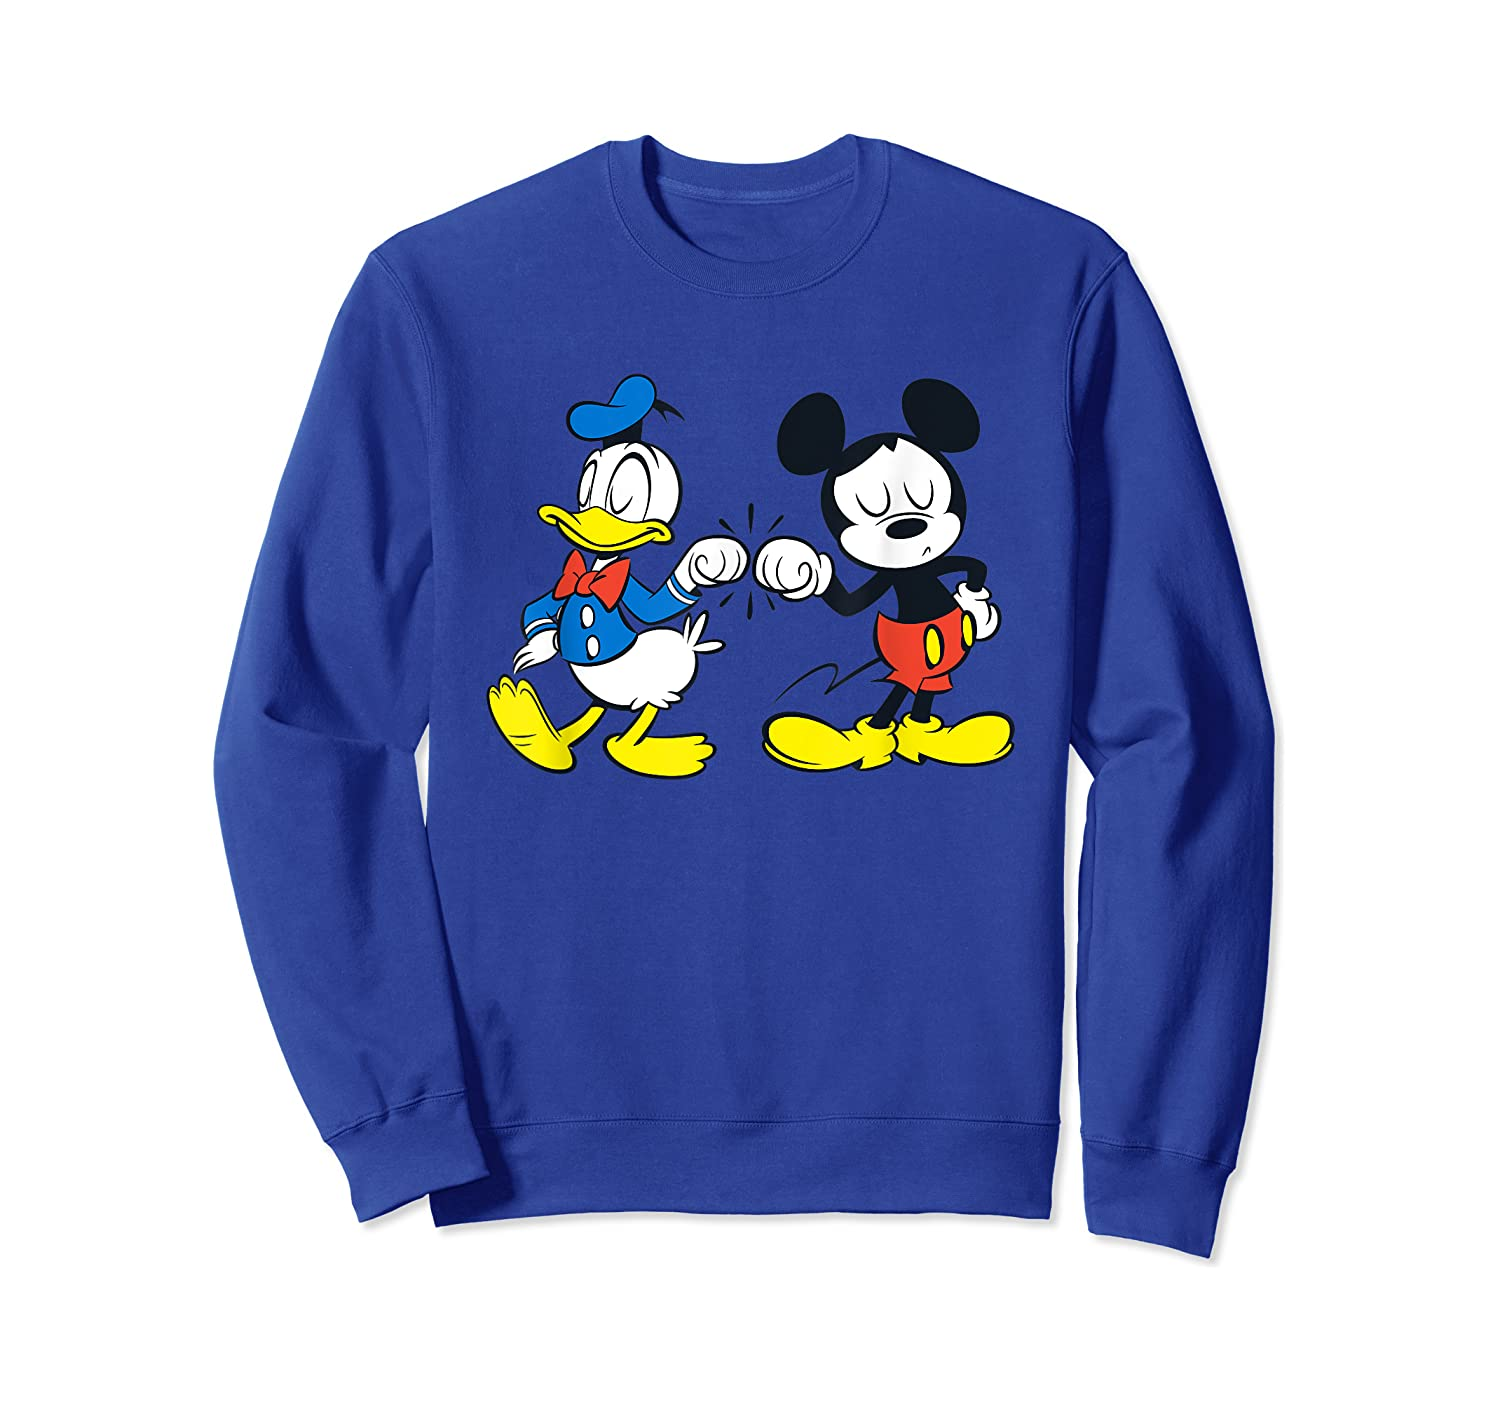 Disney Mickey Mouse And Donald Duck Best Friends T-shirt Crewneck Sweater